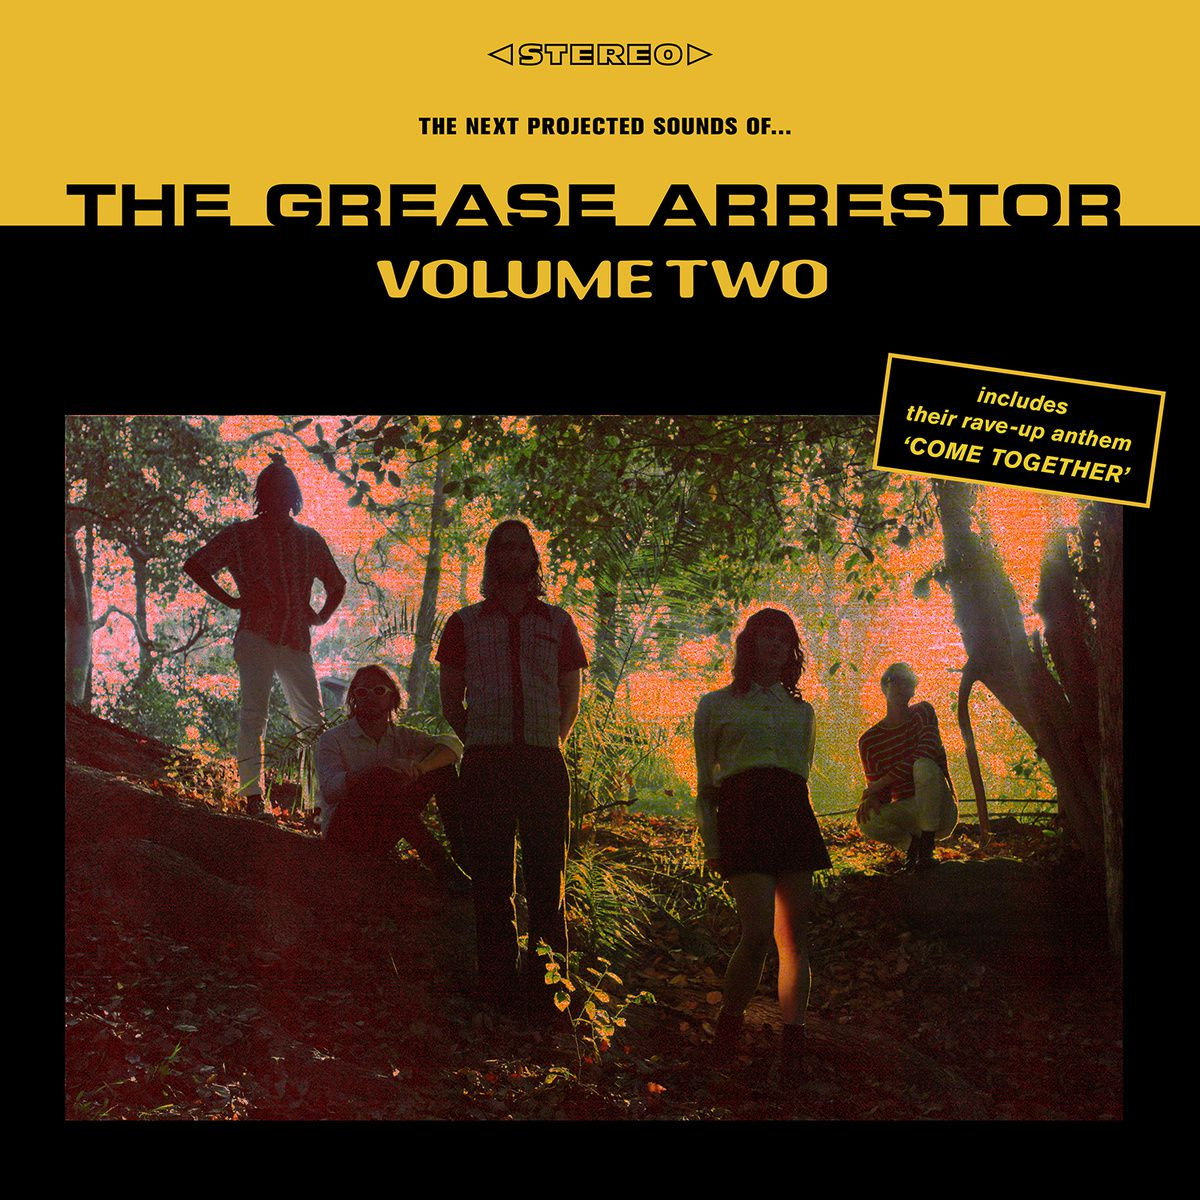 THE GREASE ARRESTOR - Volume two (2015)